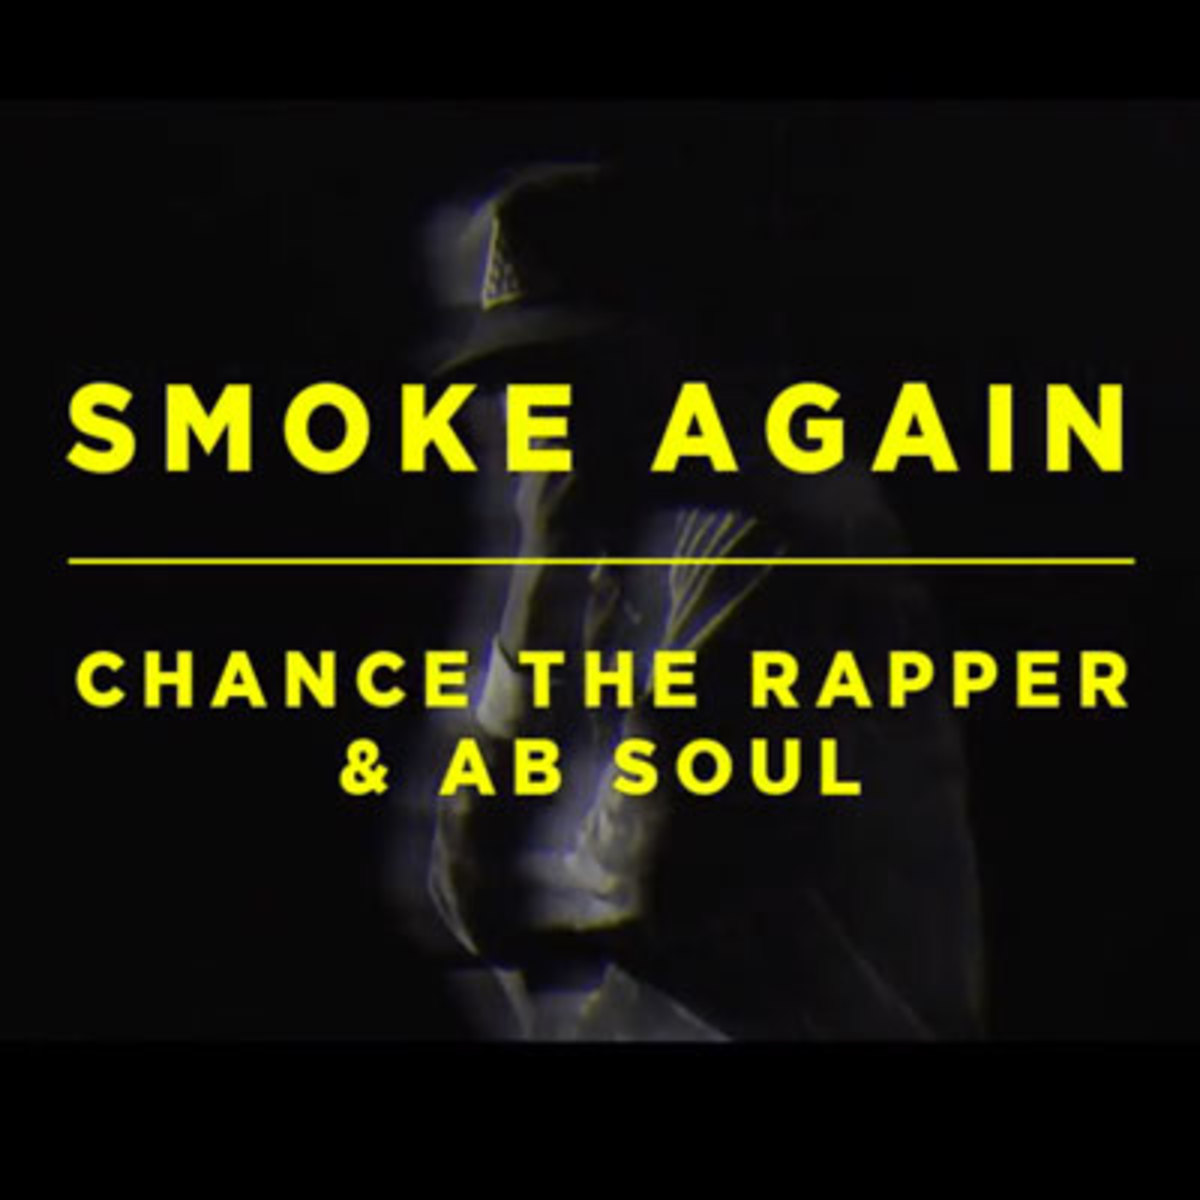 chancetherapper-smokeagain.jpg